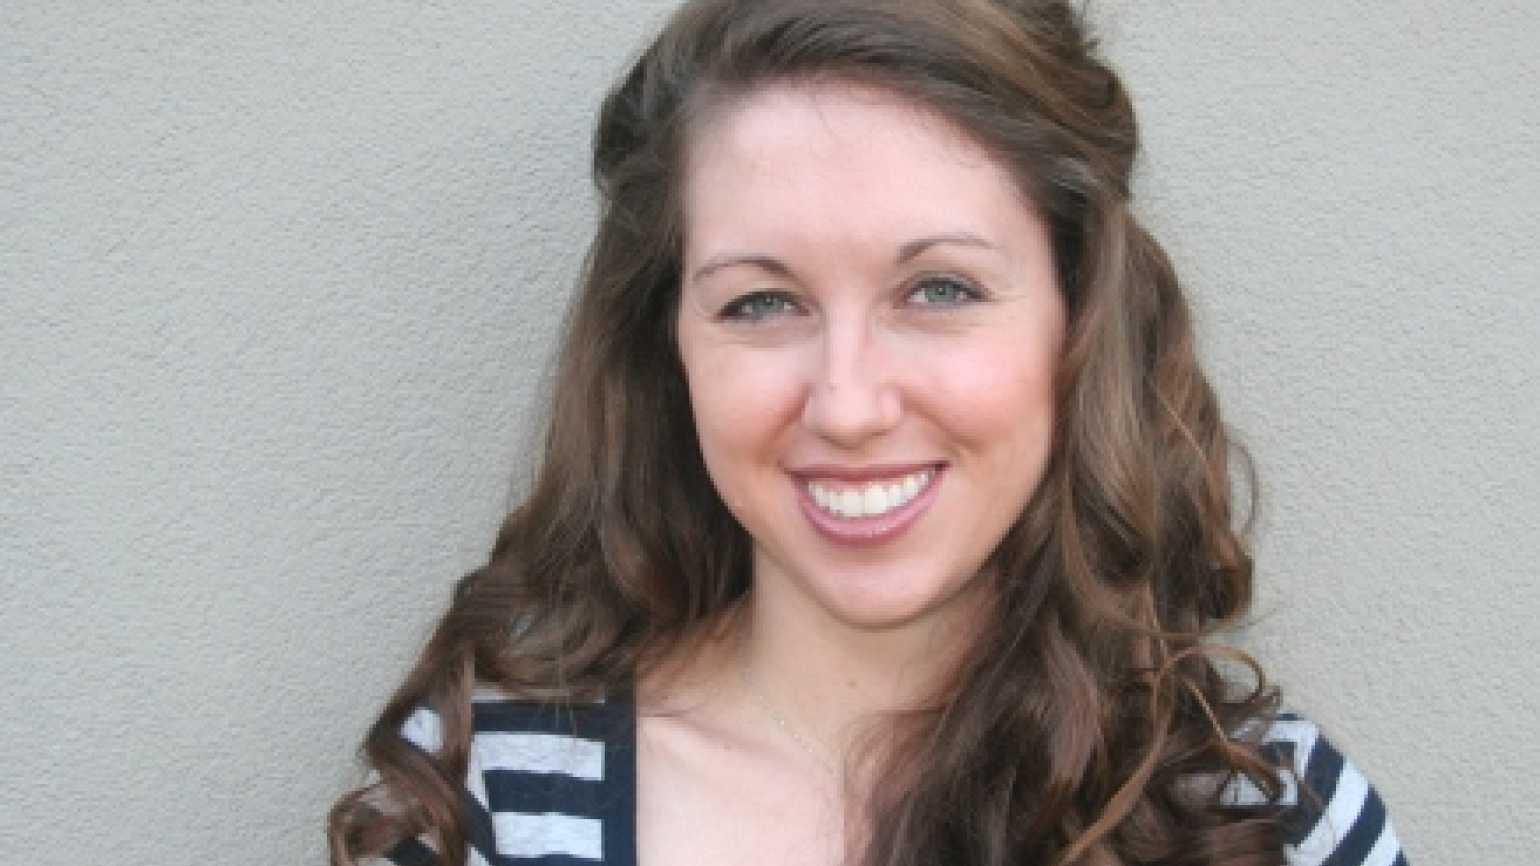 Daily Guideposts Contributor, Ashley Kappel, stories of faith in frustration